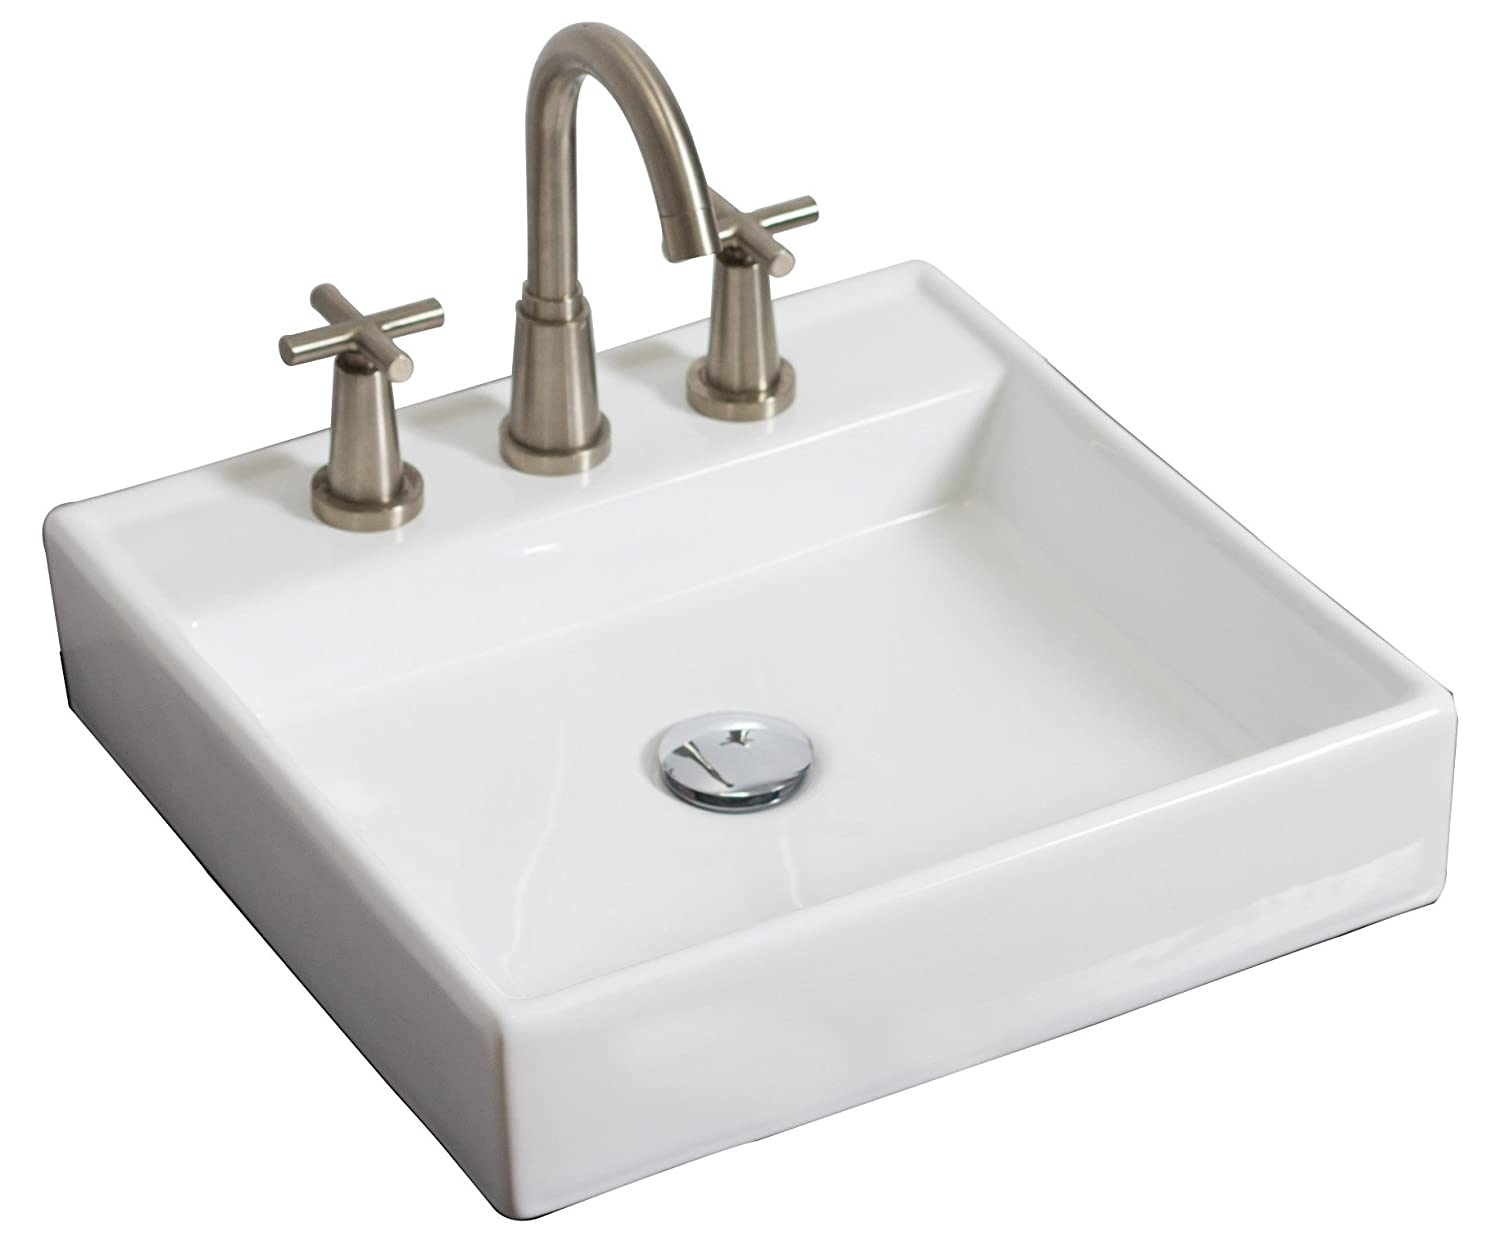 American Imaginations AI-4-1121 Wall Mount Square Vessel for 8-Inch OC Faucet, 17.5-Inch x 17.5-Inch, White